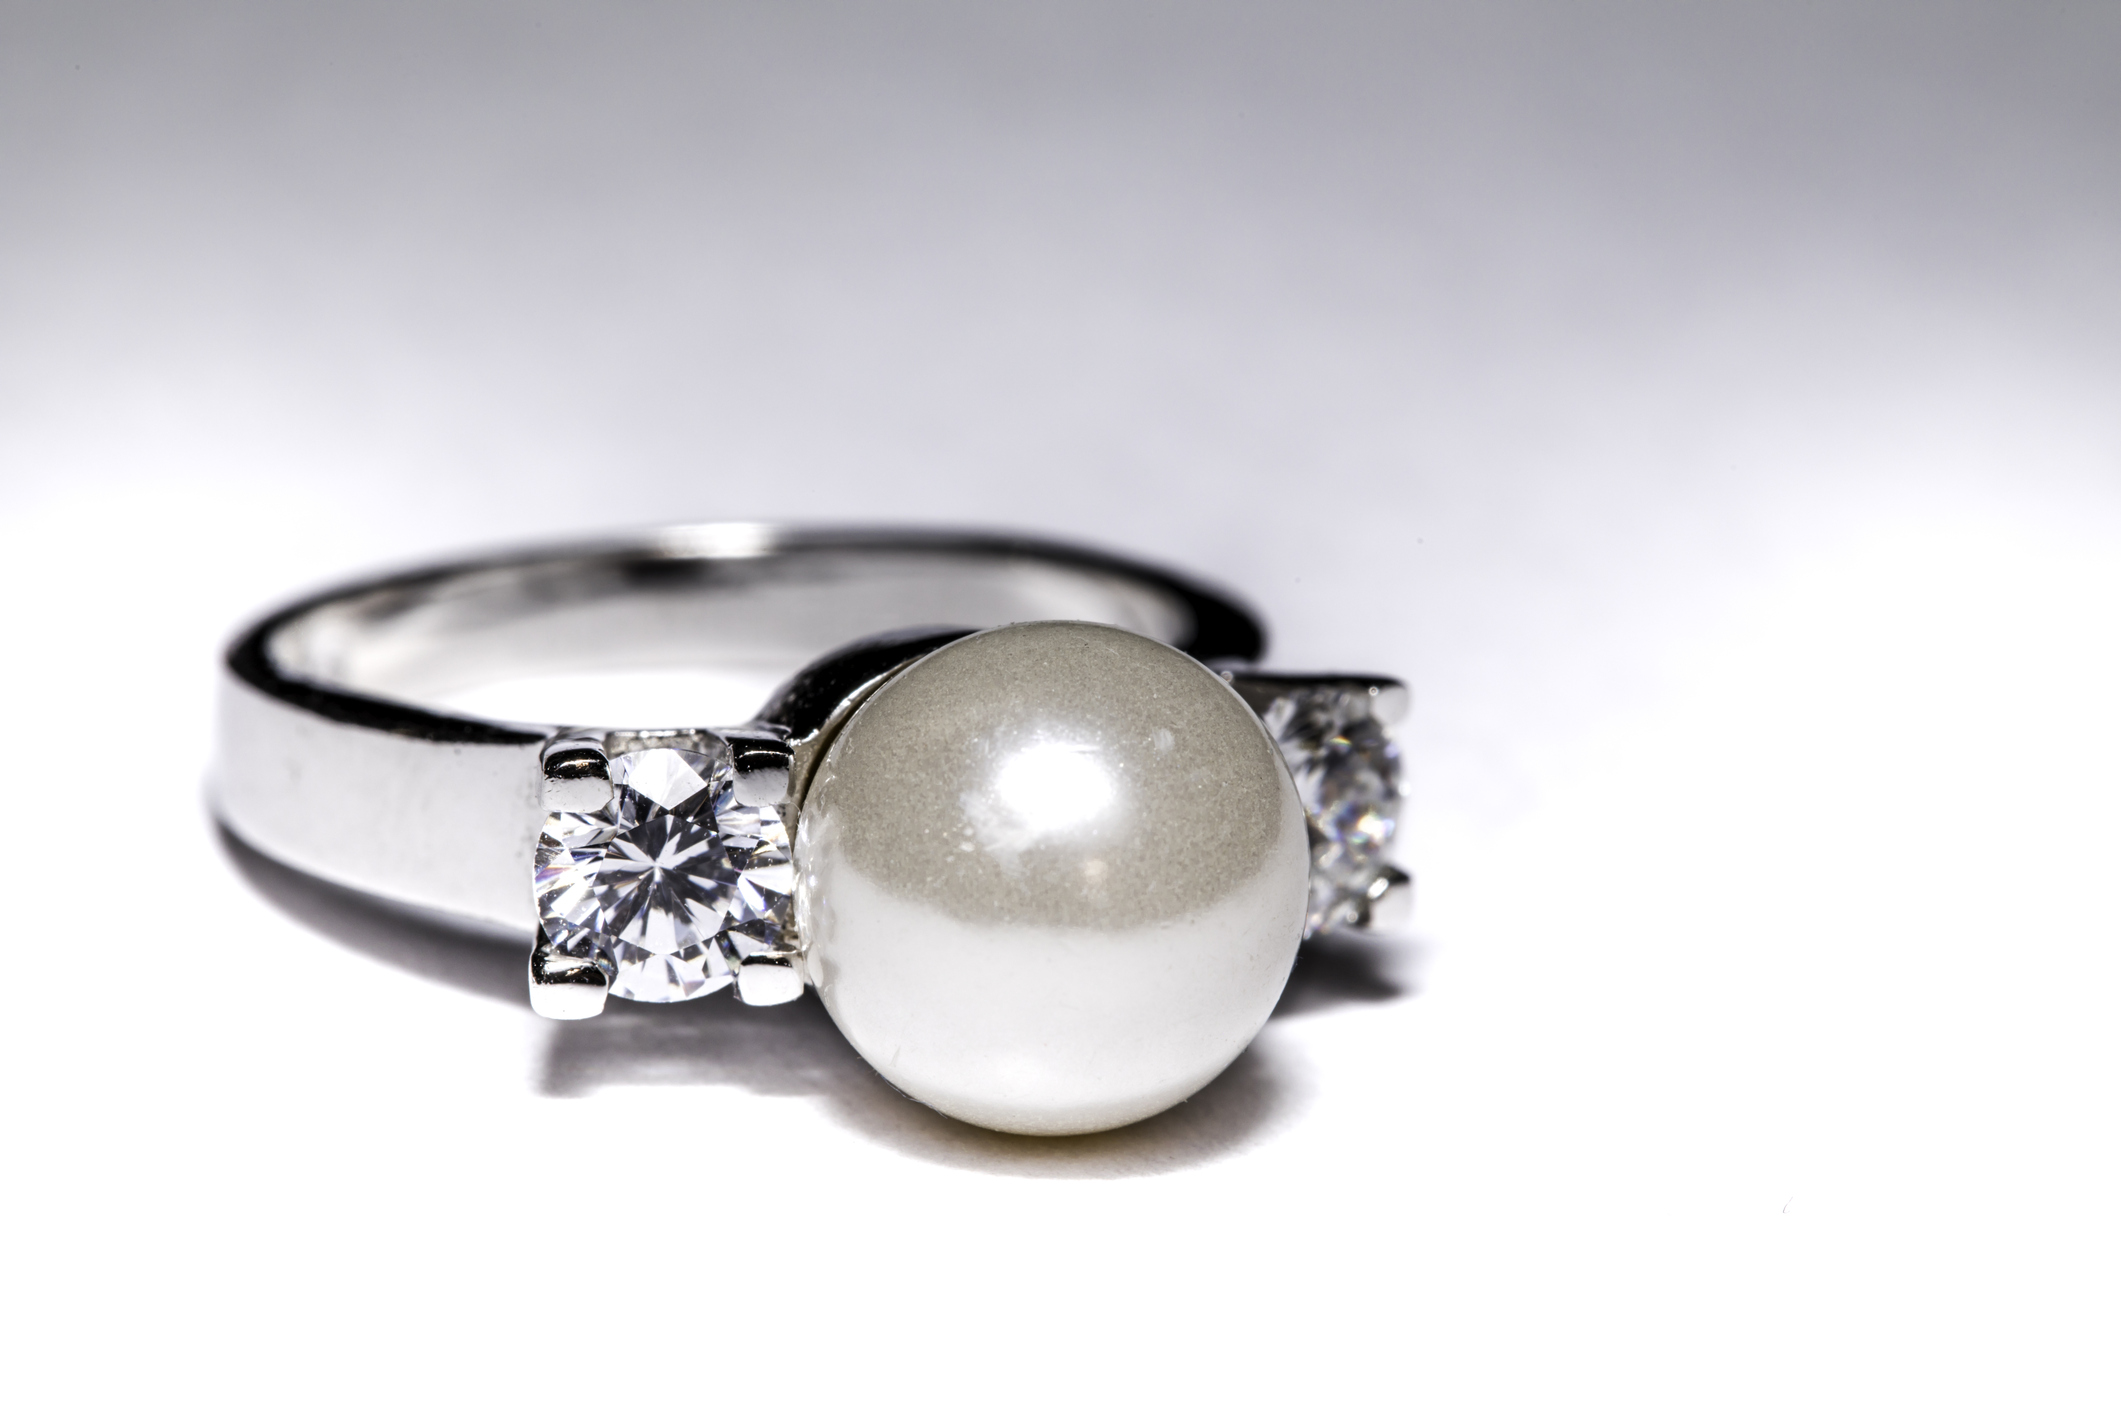 bands pearls accessories freshwater rings luxury from edi engagement gift silver women jewelry item sterling lace genuine for unique natural party ring in